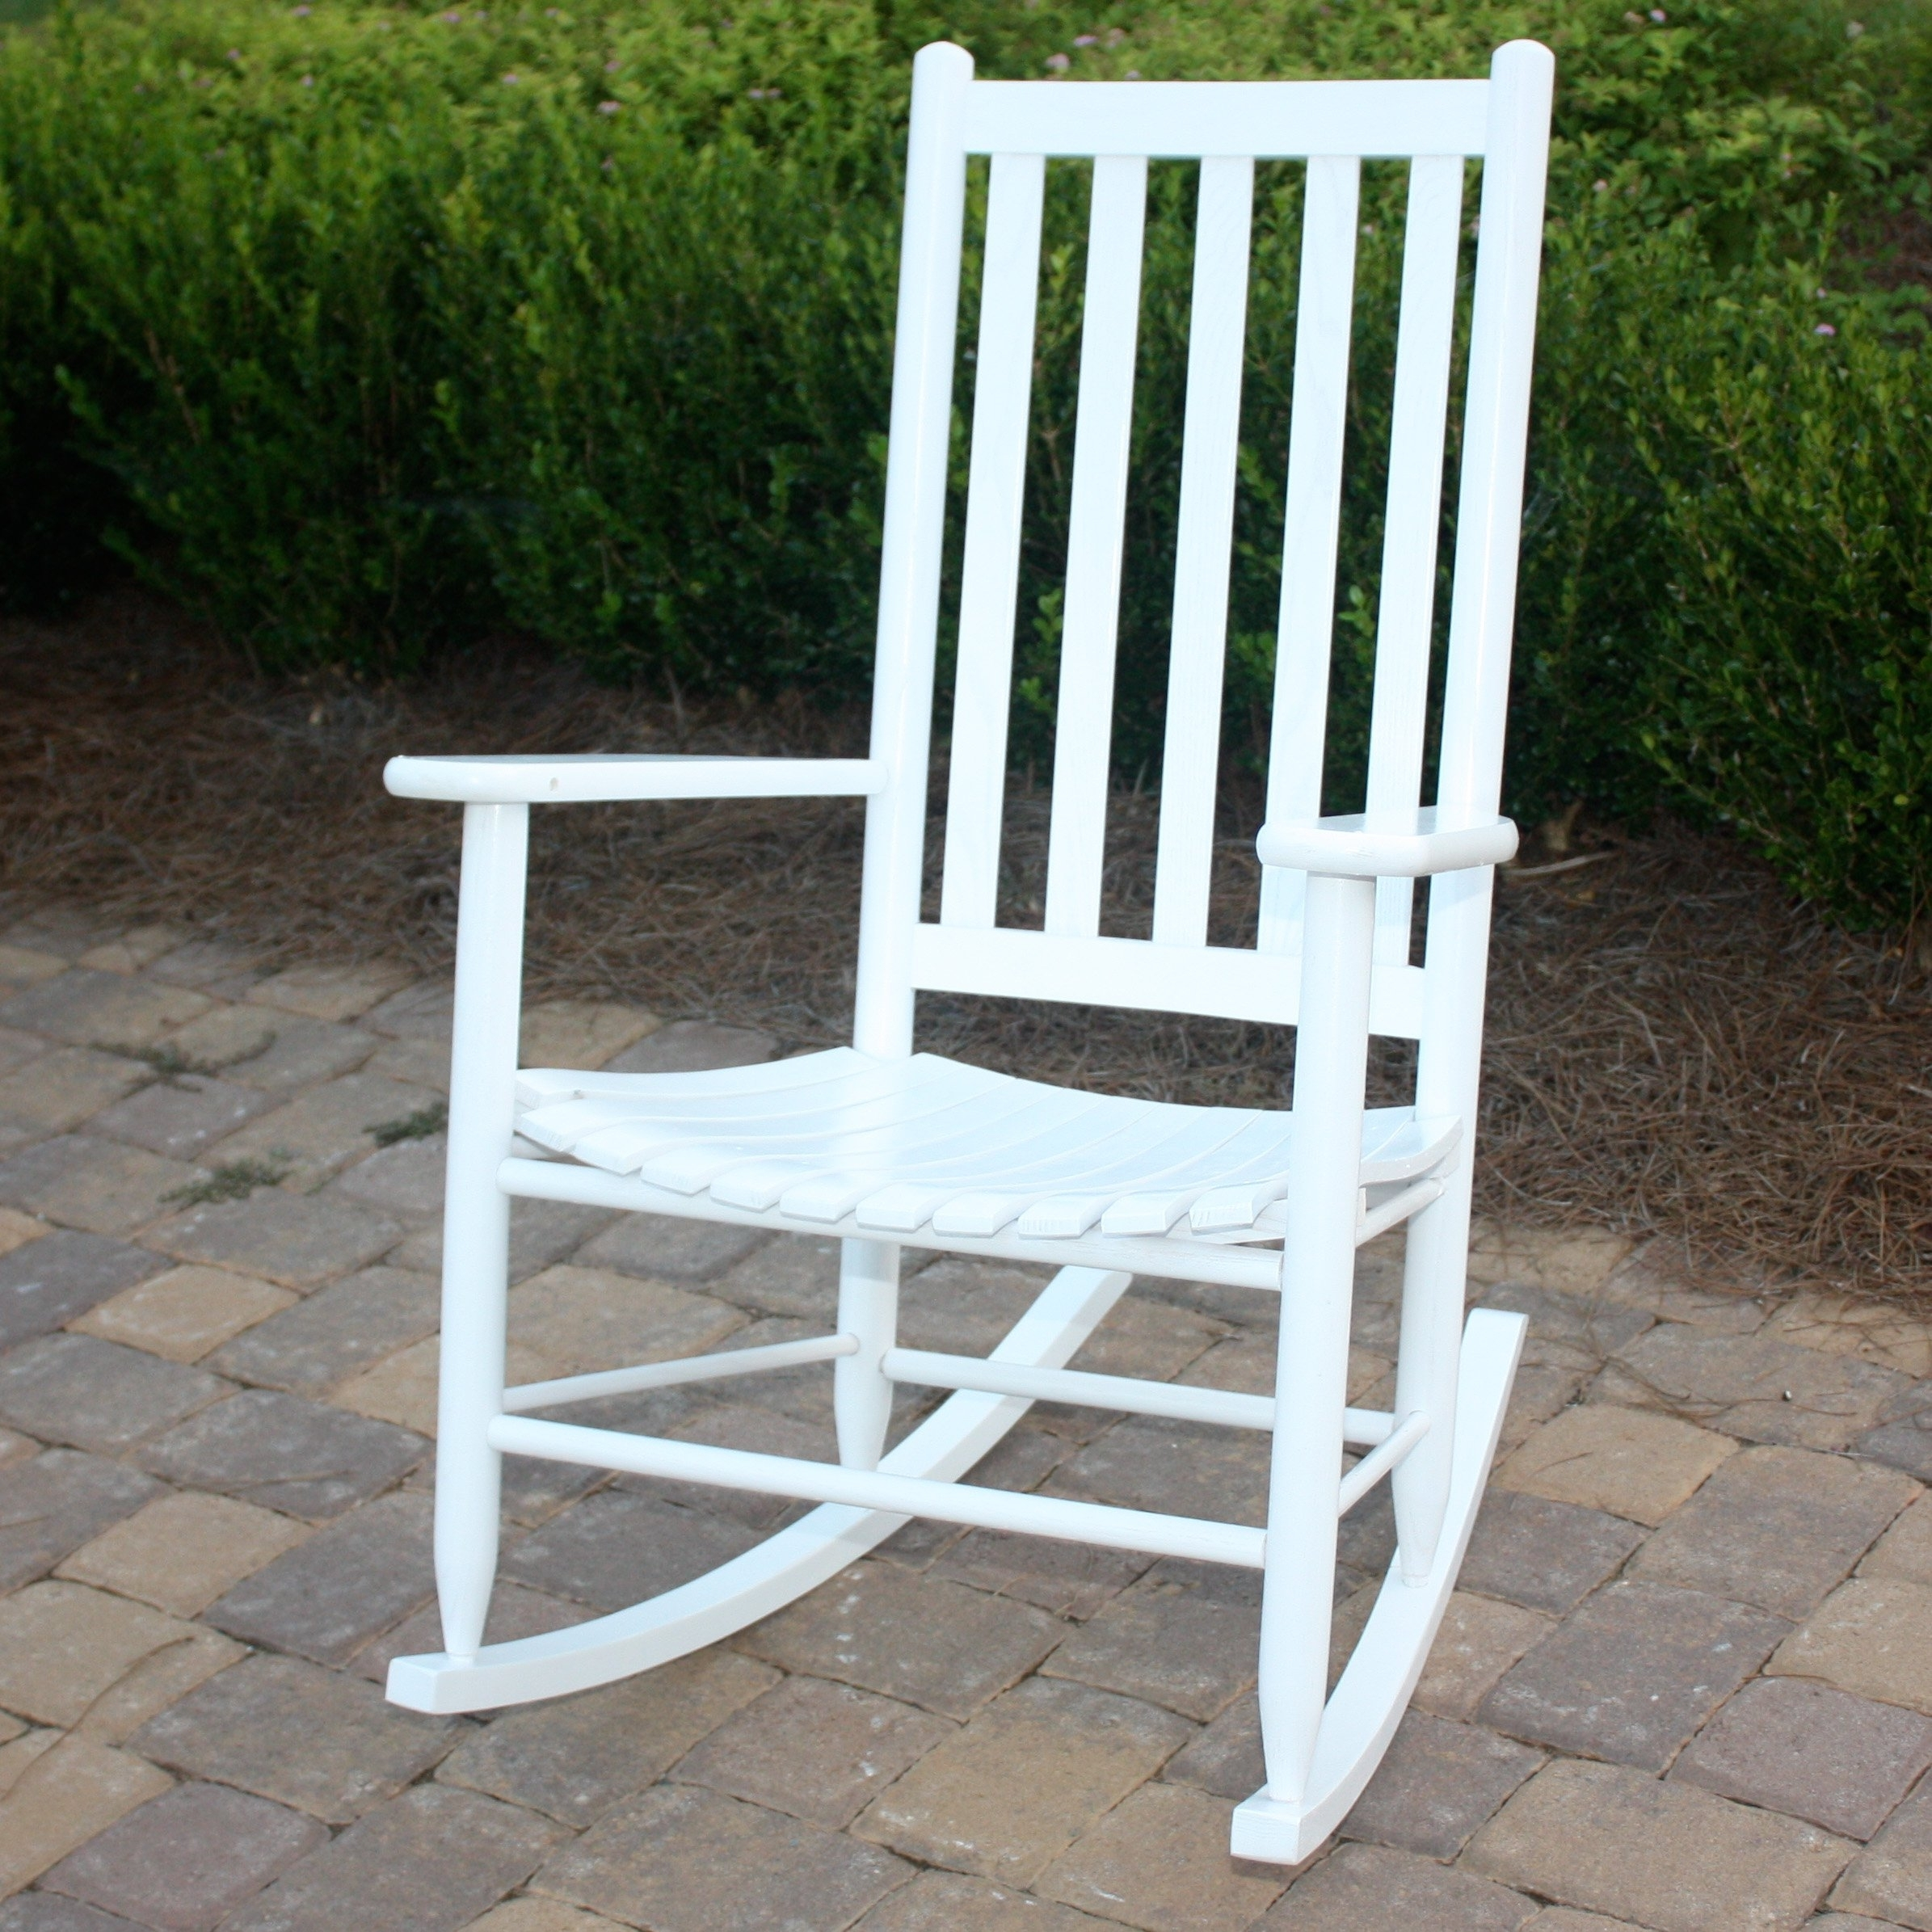 Furniture: Inspiring Outdoor Rocking Chair For Your Porch Or Your Inside Rocking Chairs For Outdoors (#6 of 15)